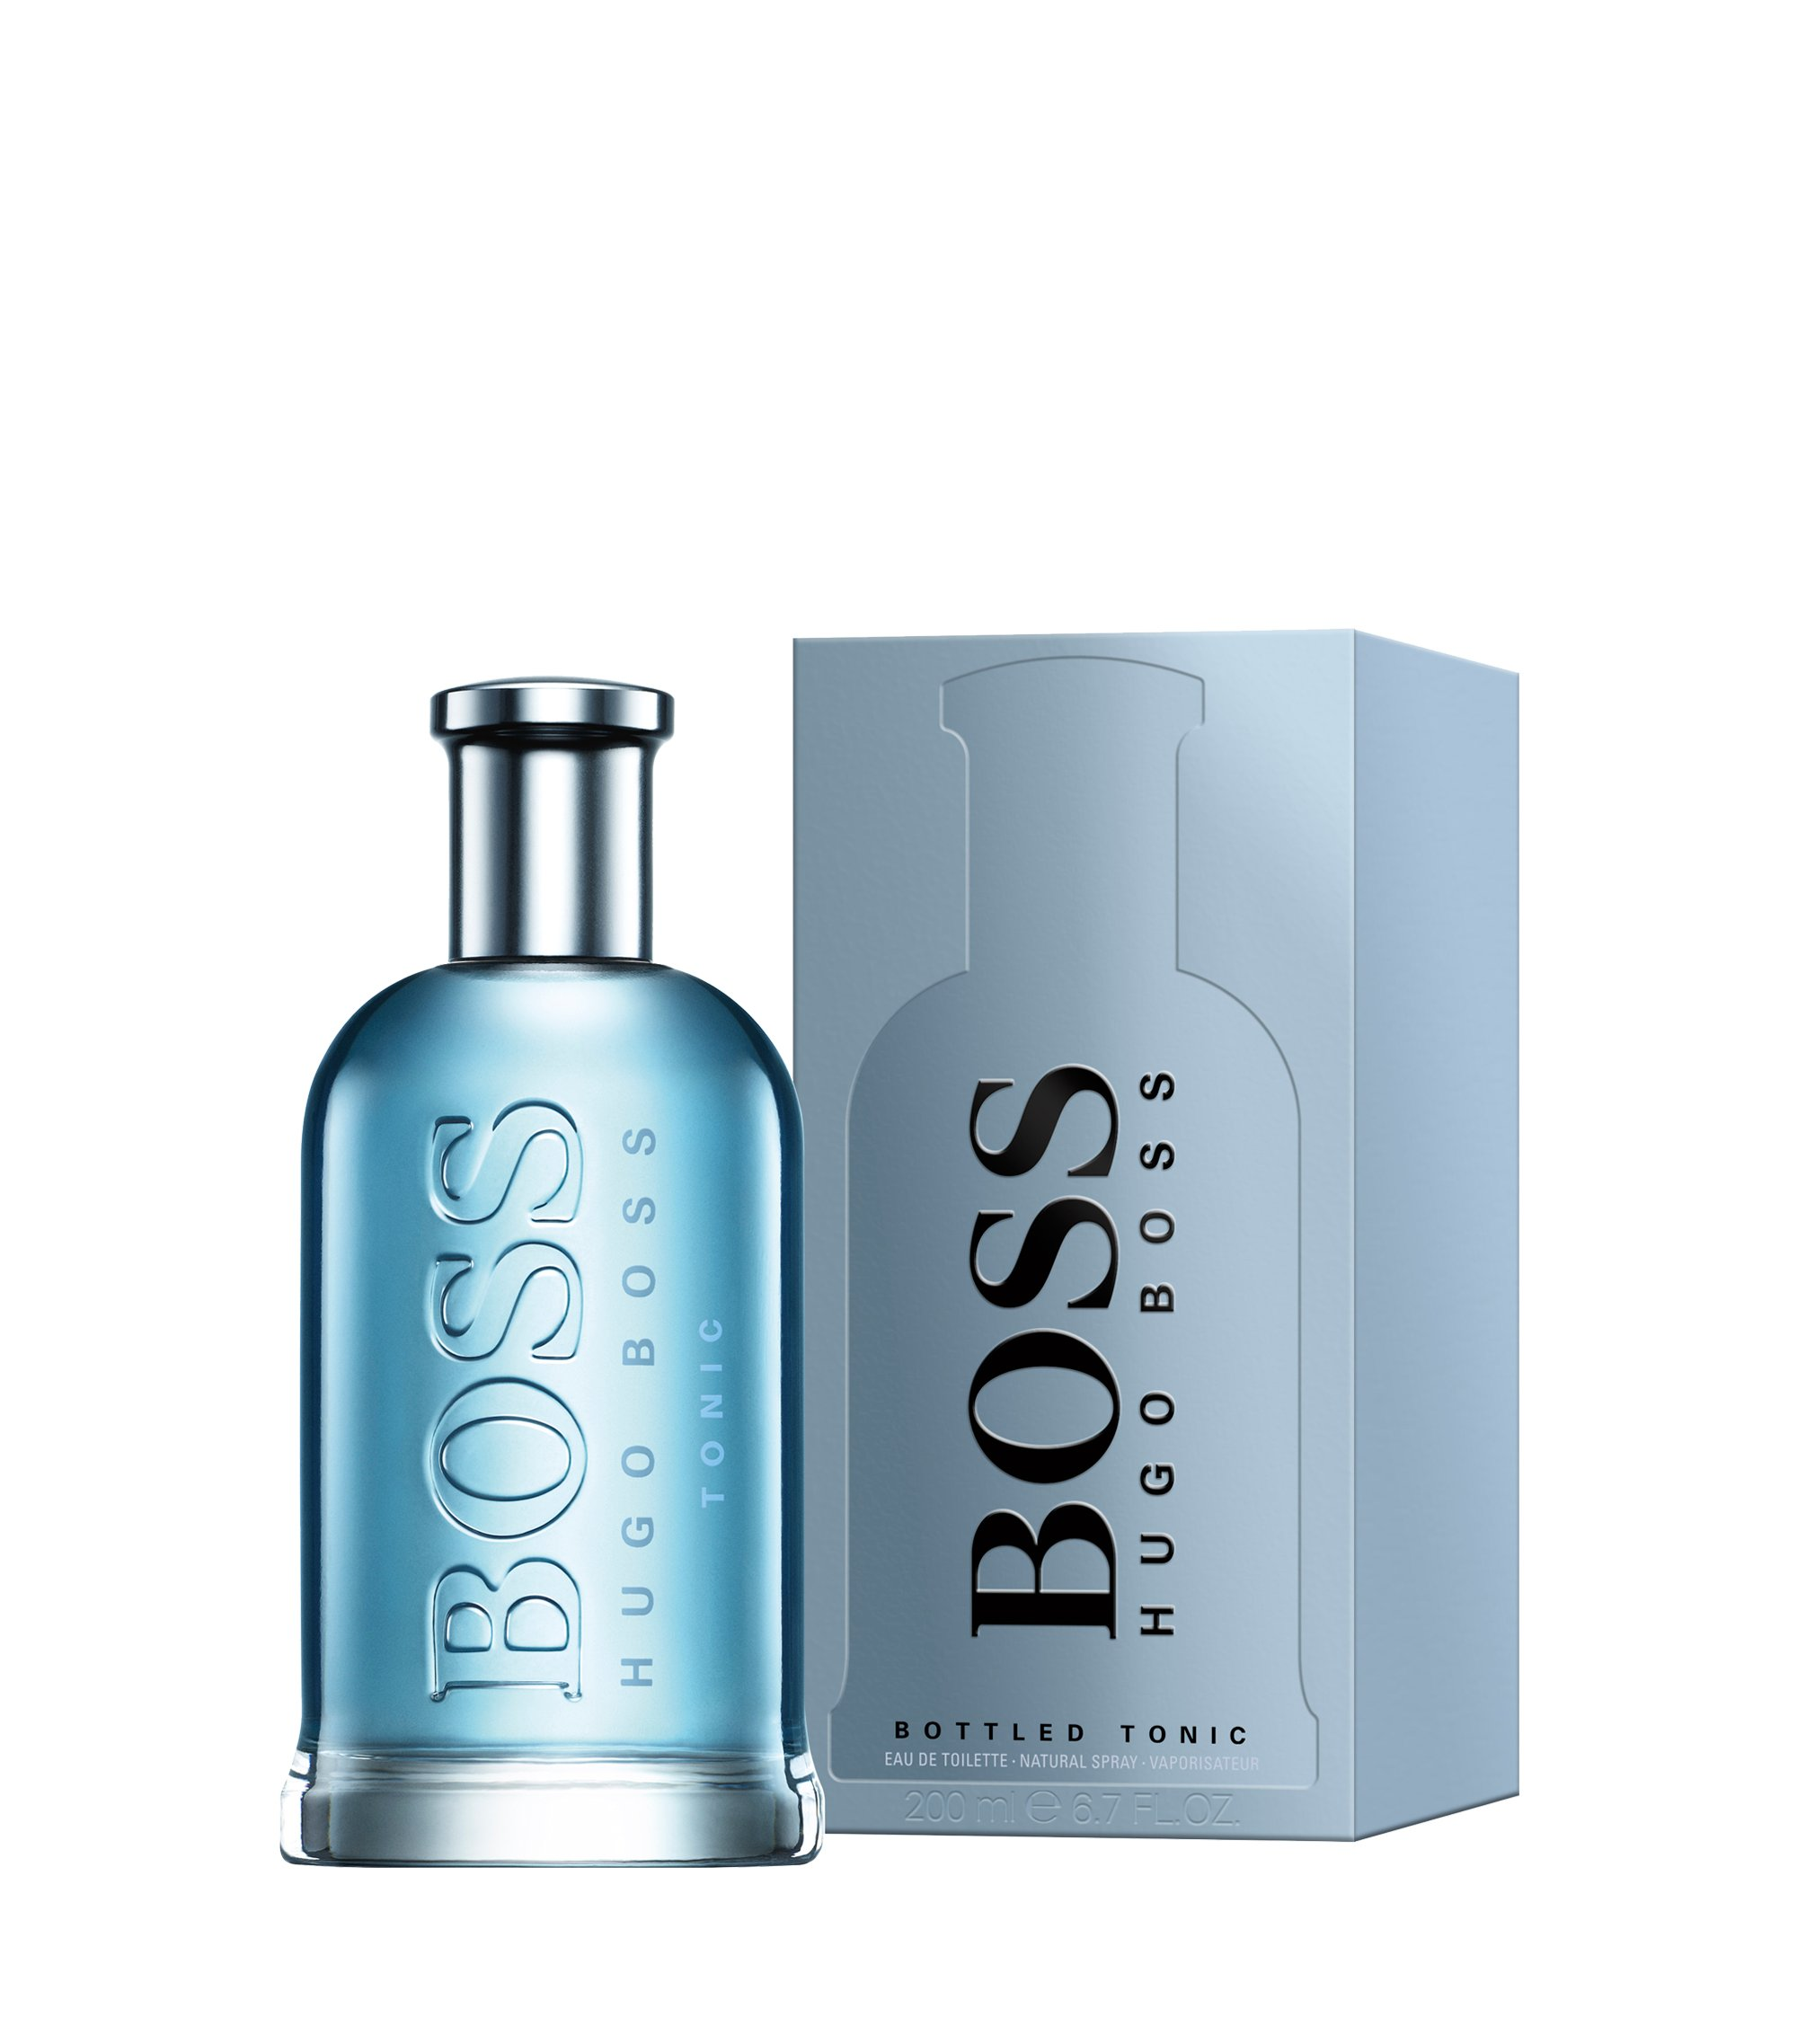 Eau de toilette BOSS Bottled Tonic da 200 ml, Assorted-Pre-Pack